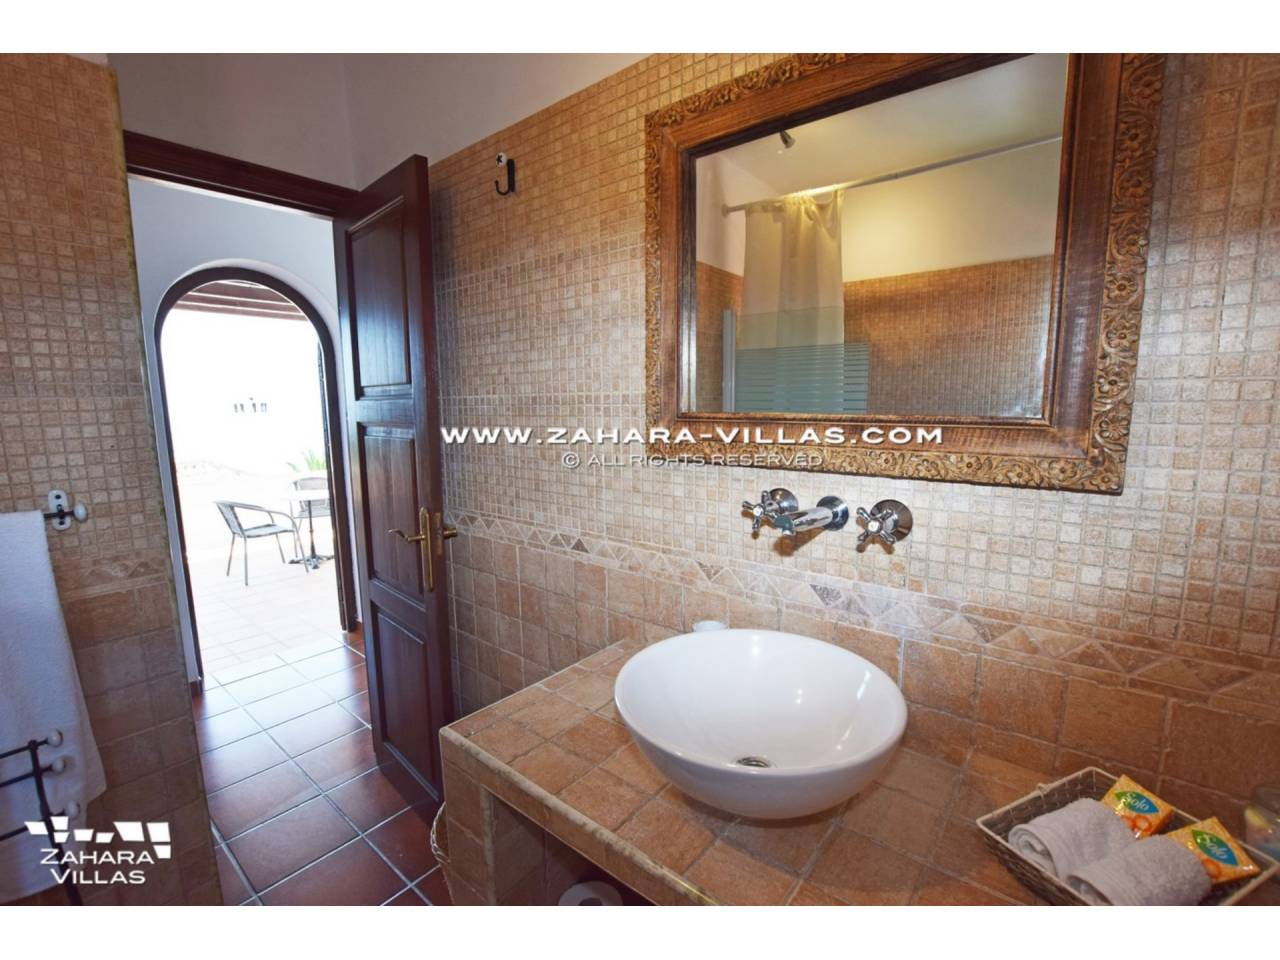 Imagen 18 de Wonderful Villa for sale in Atlanterra-Zahara de los Atunes